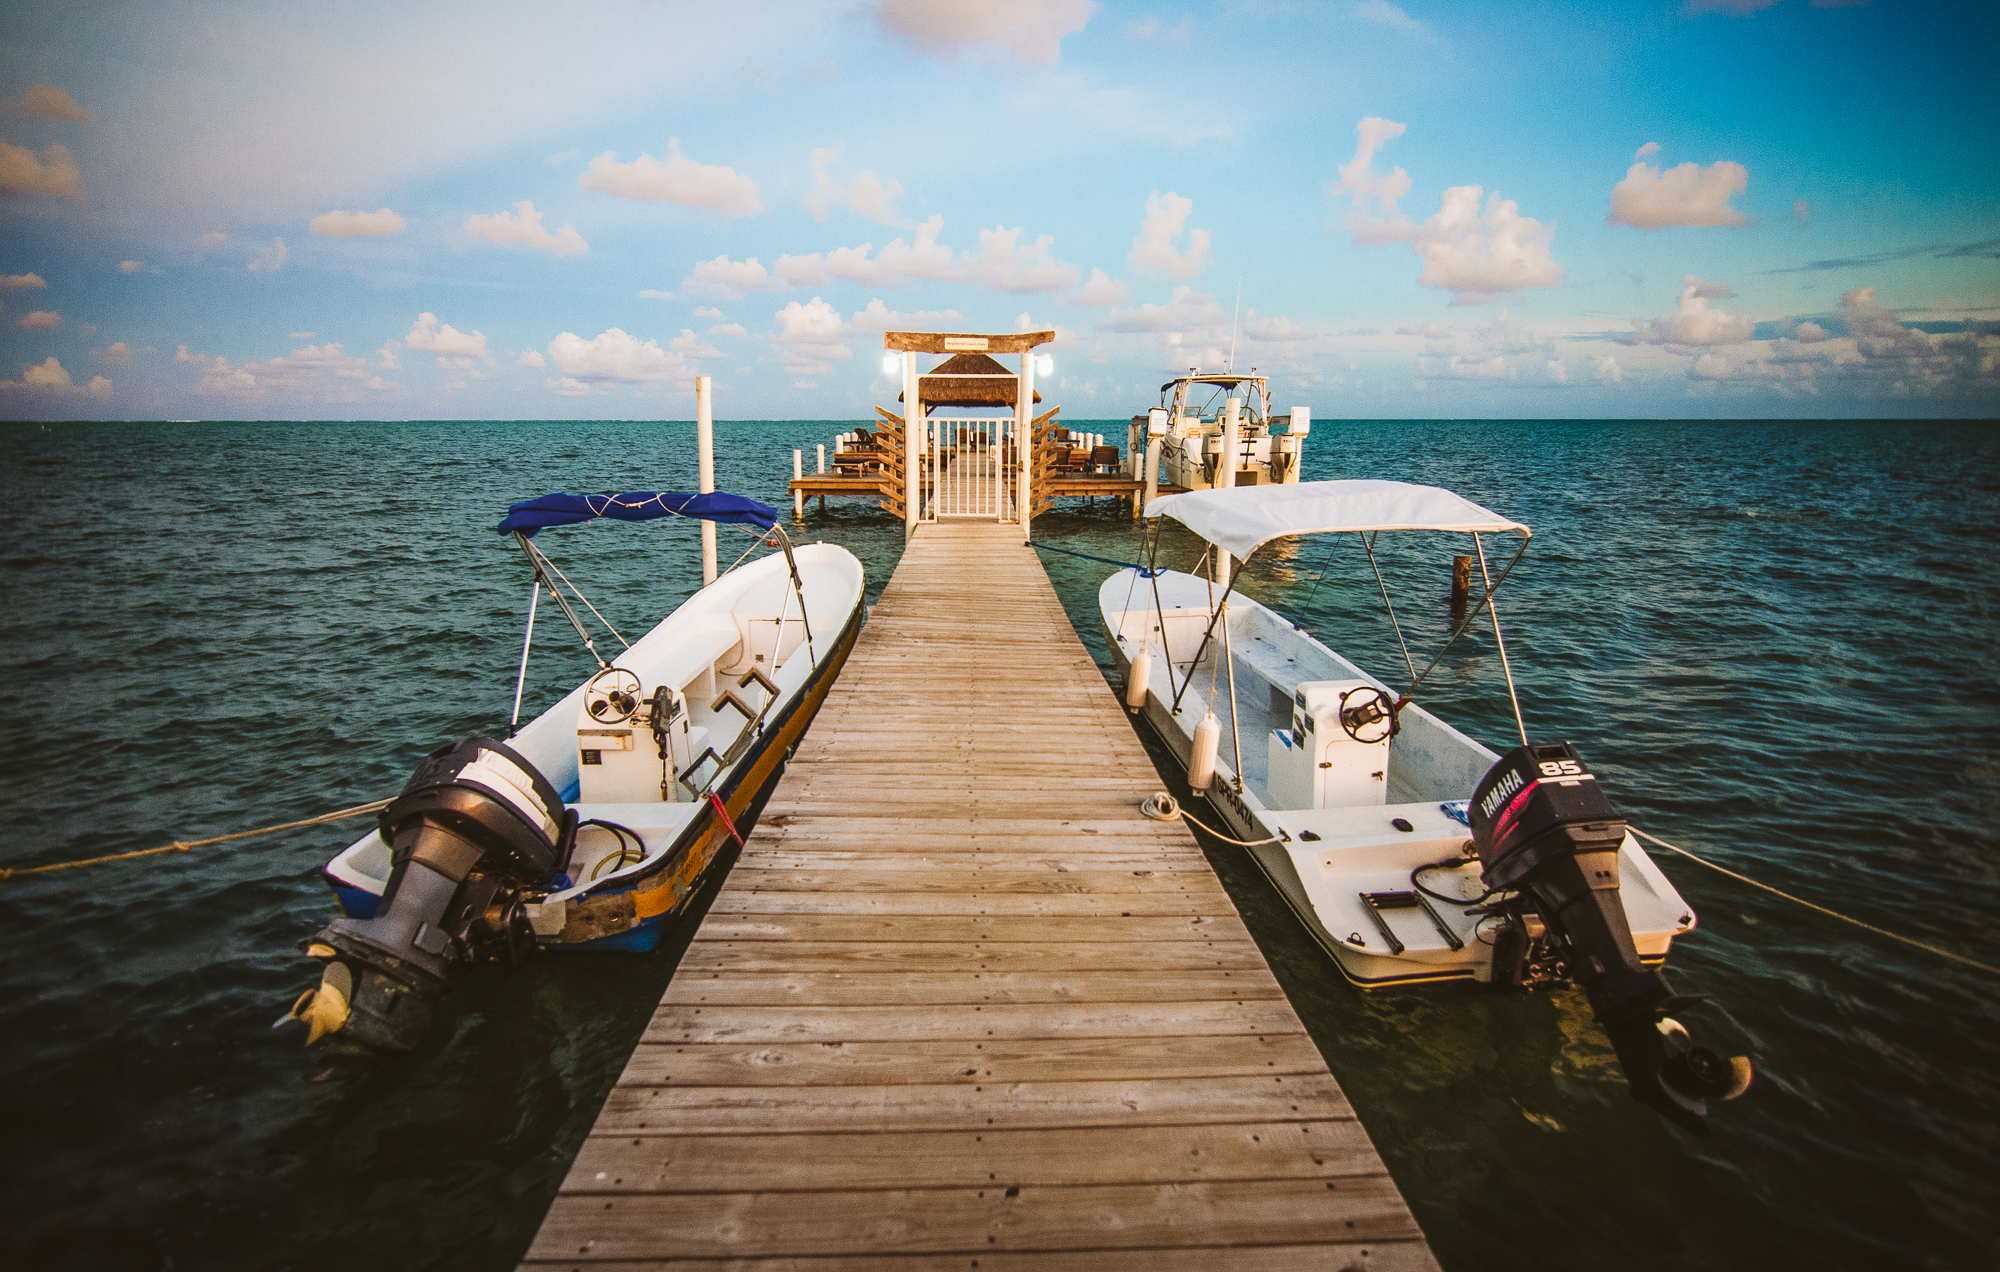 The sunset view from our dock in Caye Caulker. On taht horizon is the Belize Barrier Reef.